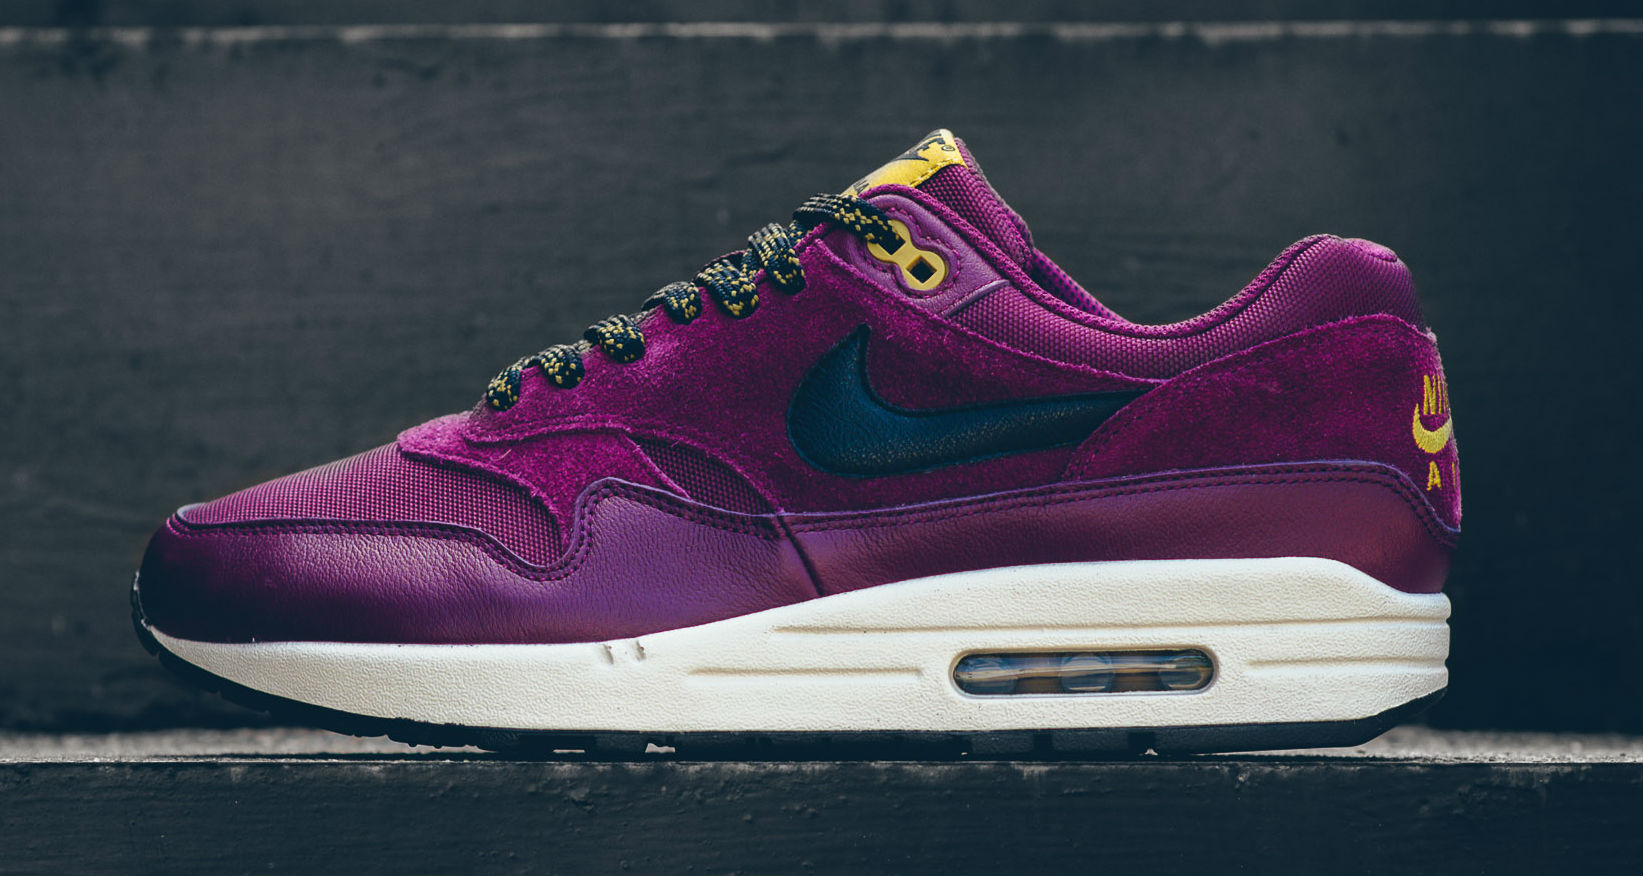 Nike Air Max 1 Premium BordeauxDesert Moss Available Now